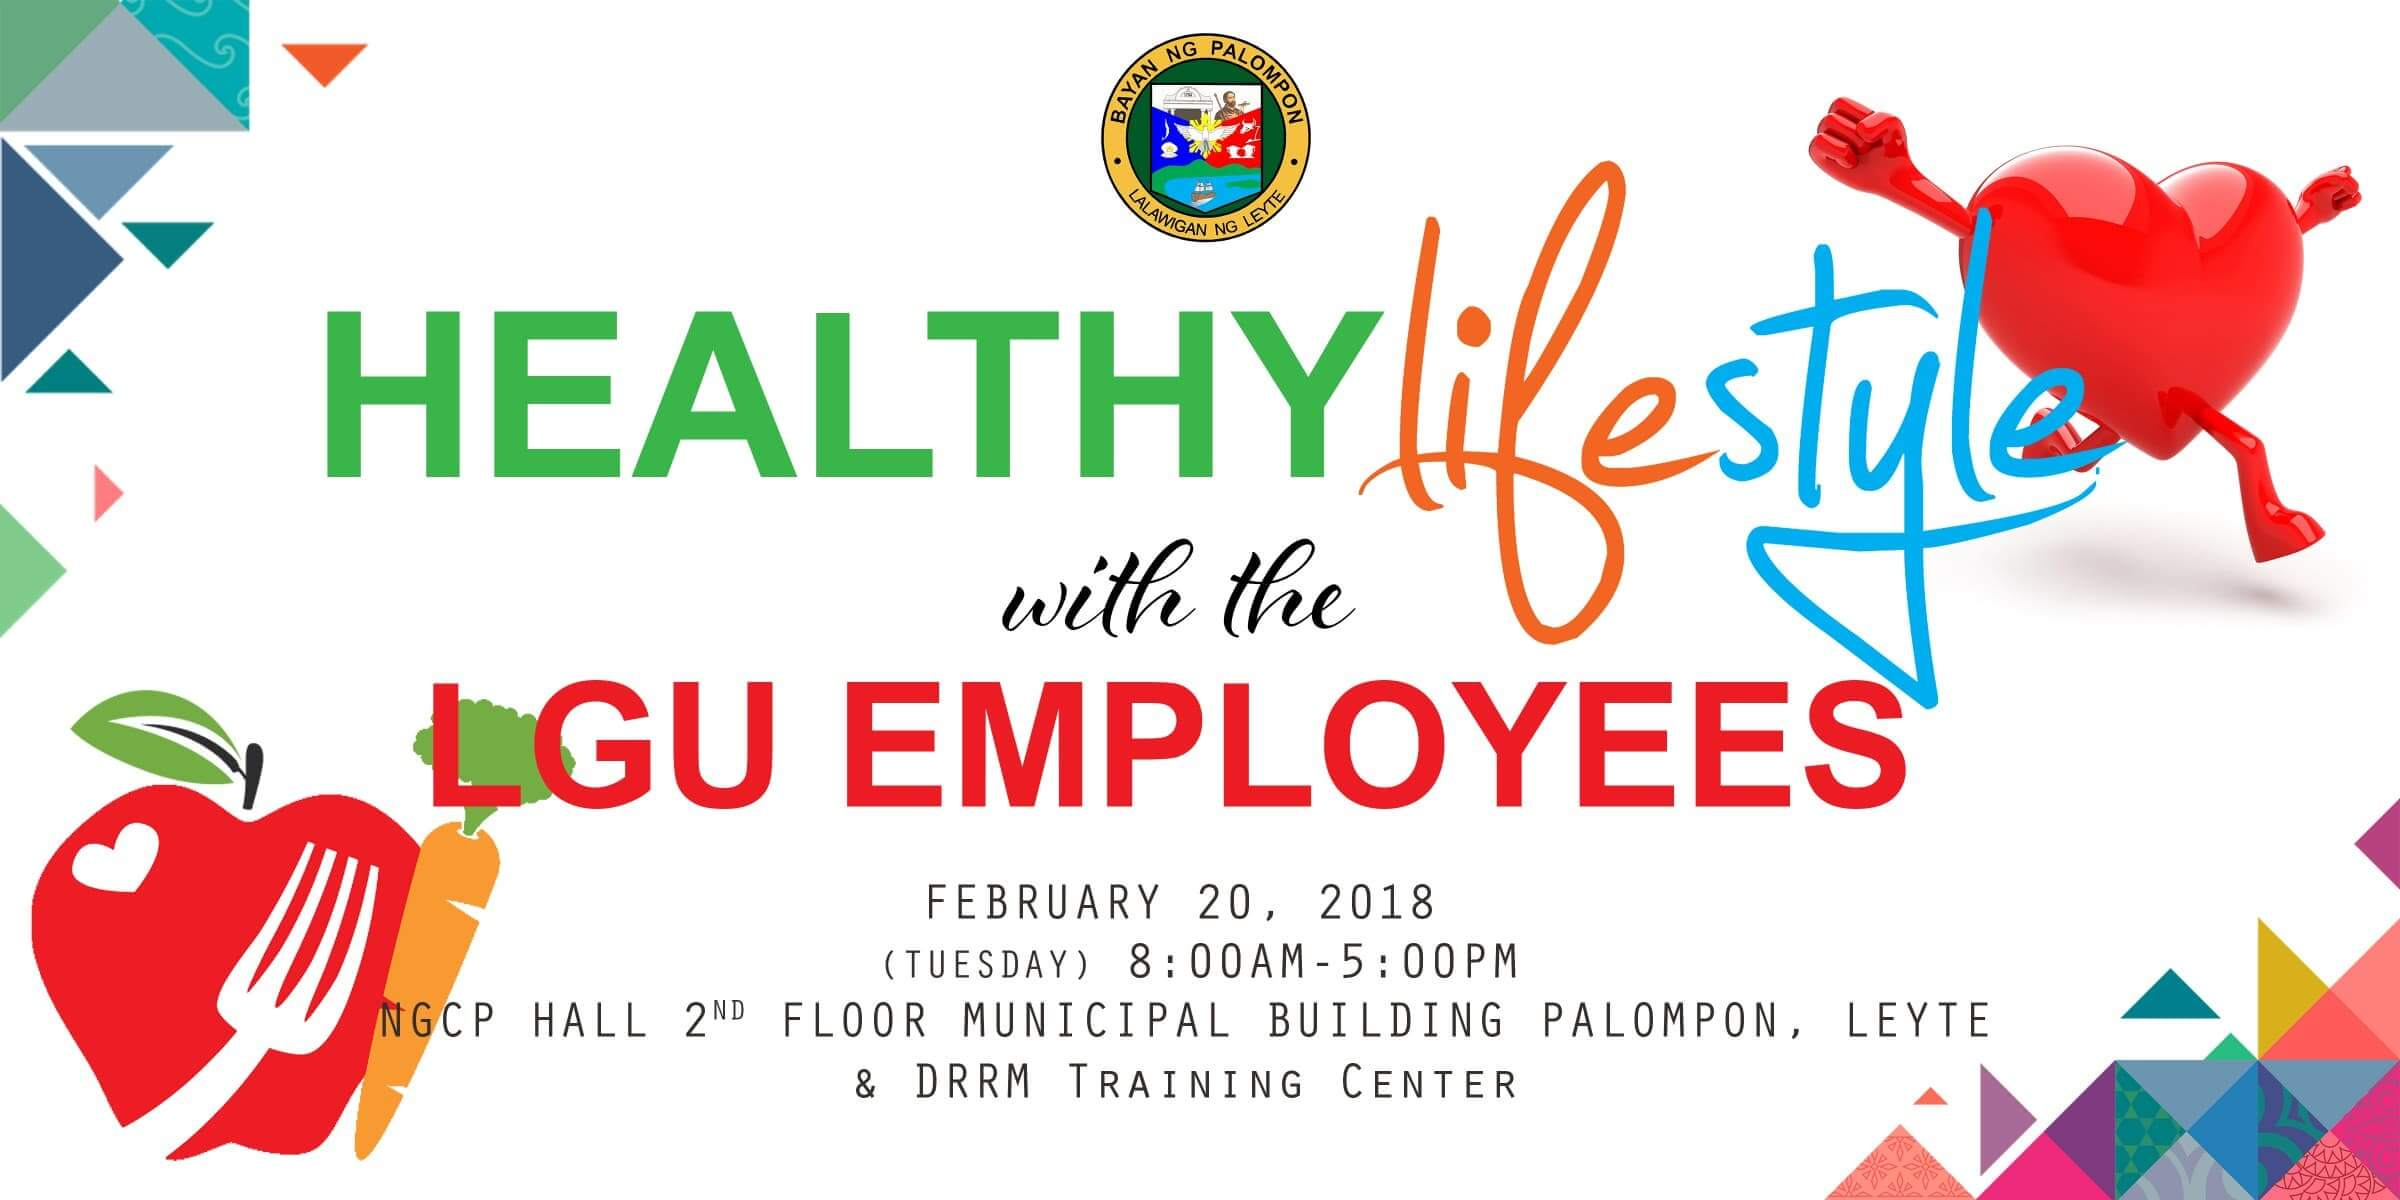 HEALTHY LIFESTYLE with the LGU EMPLOYEES